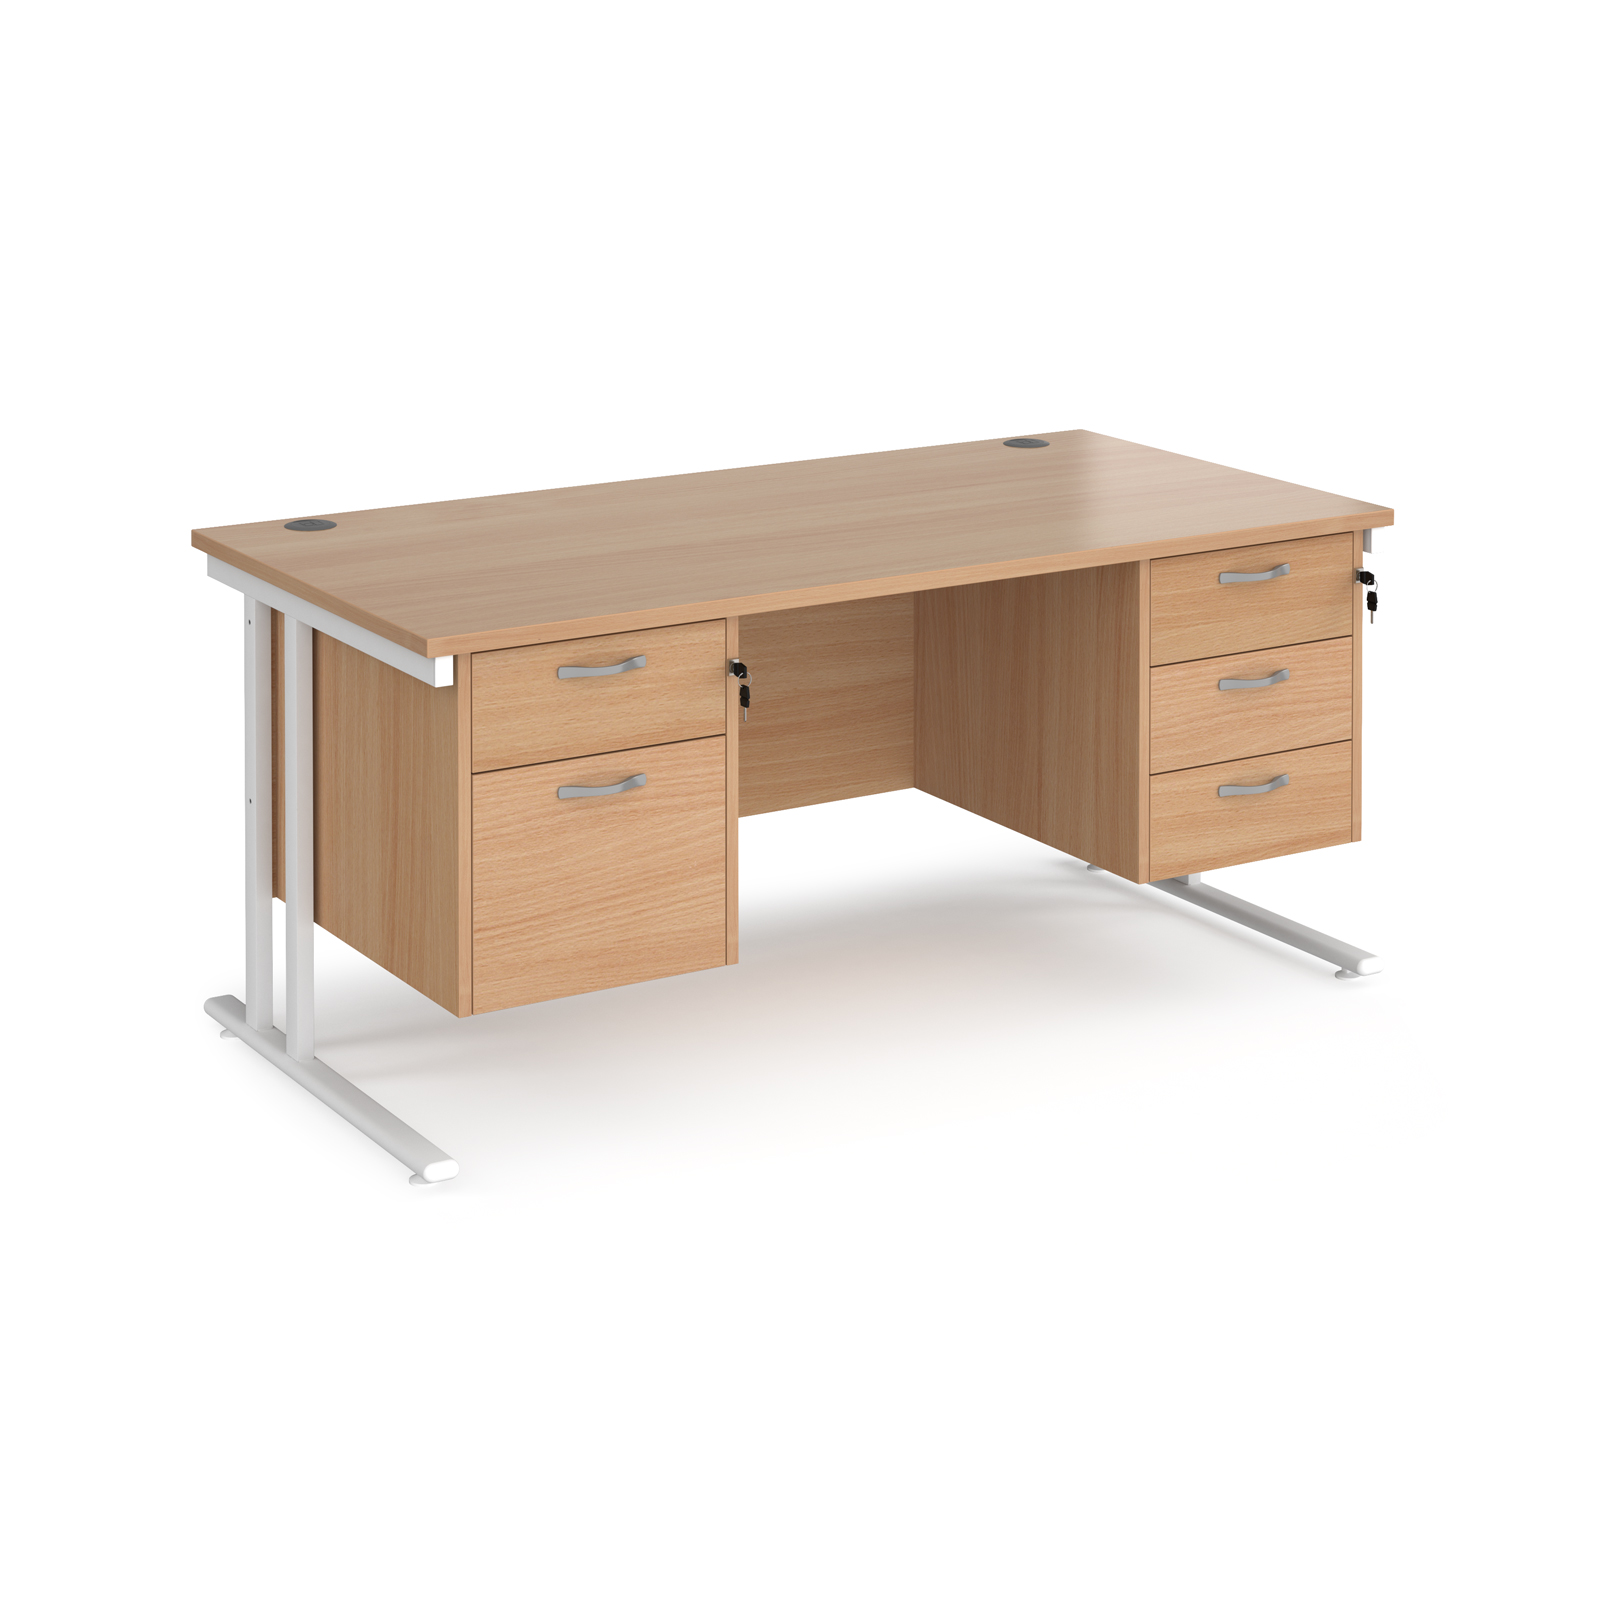 Maestro 25 straight desk 1600mm x 800mm with 2 and 3 drawer pedestals - white cantilever leg frame, beech top